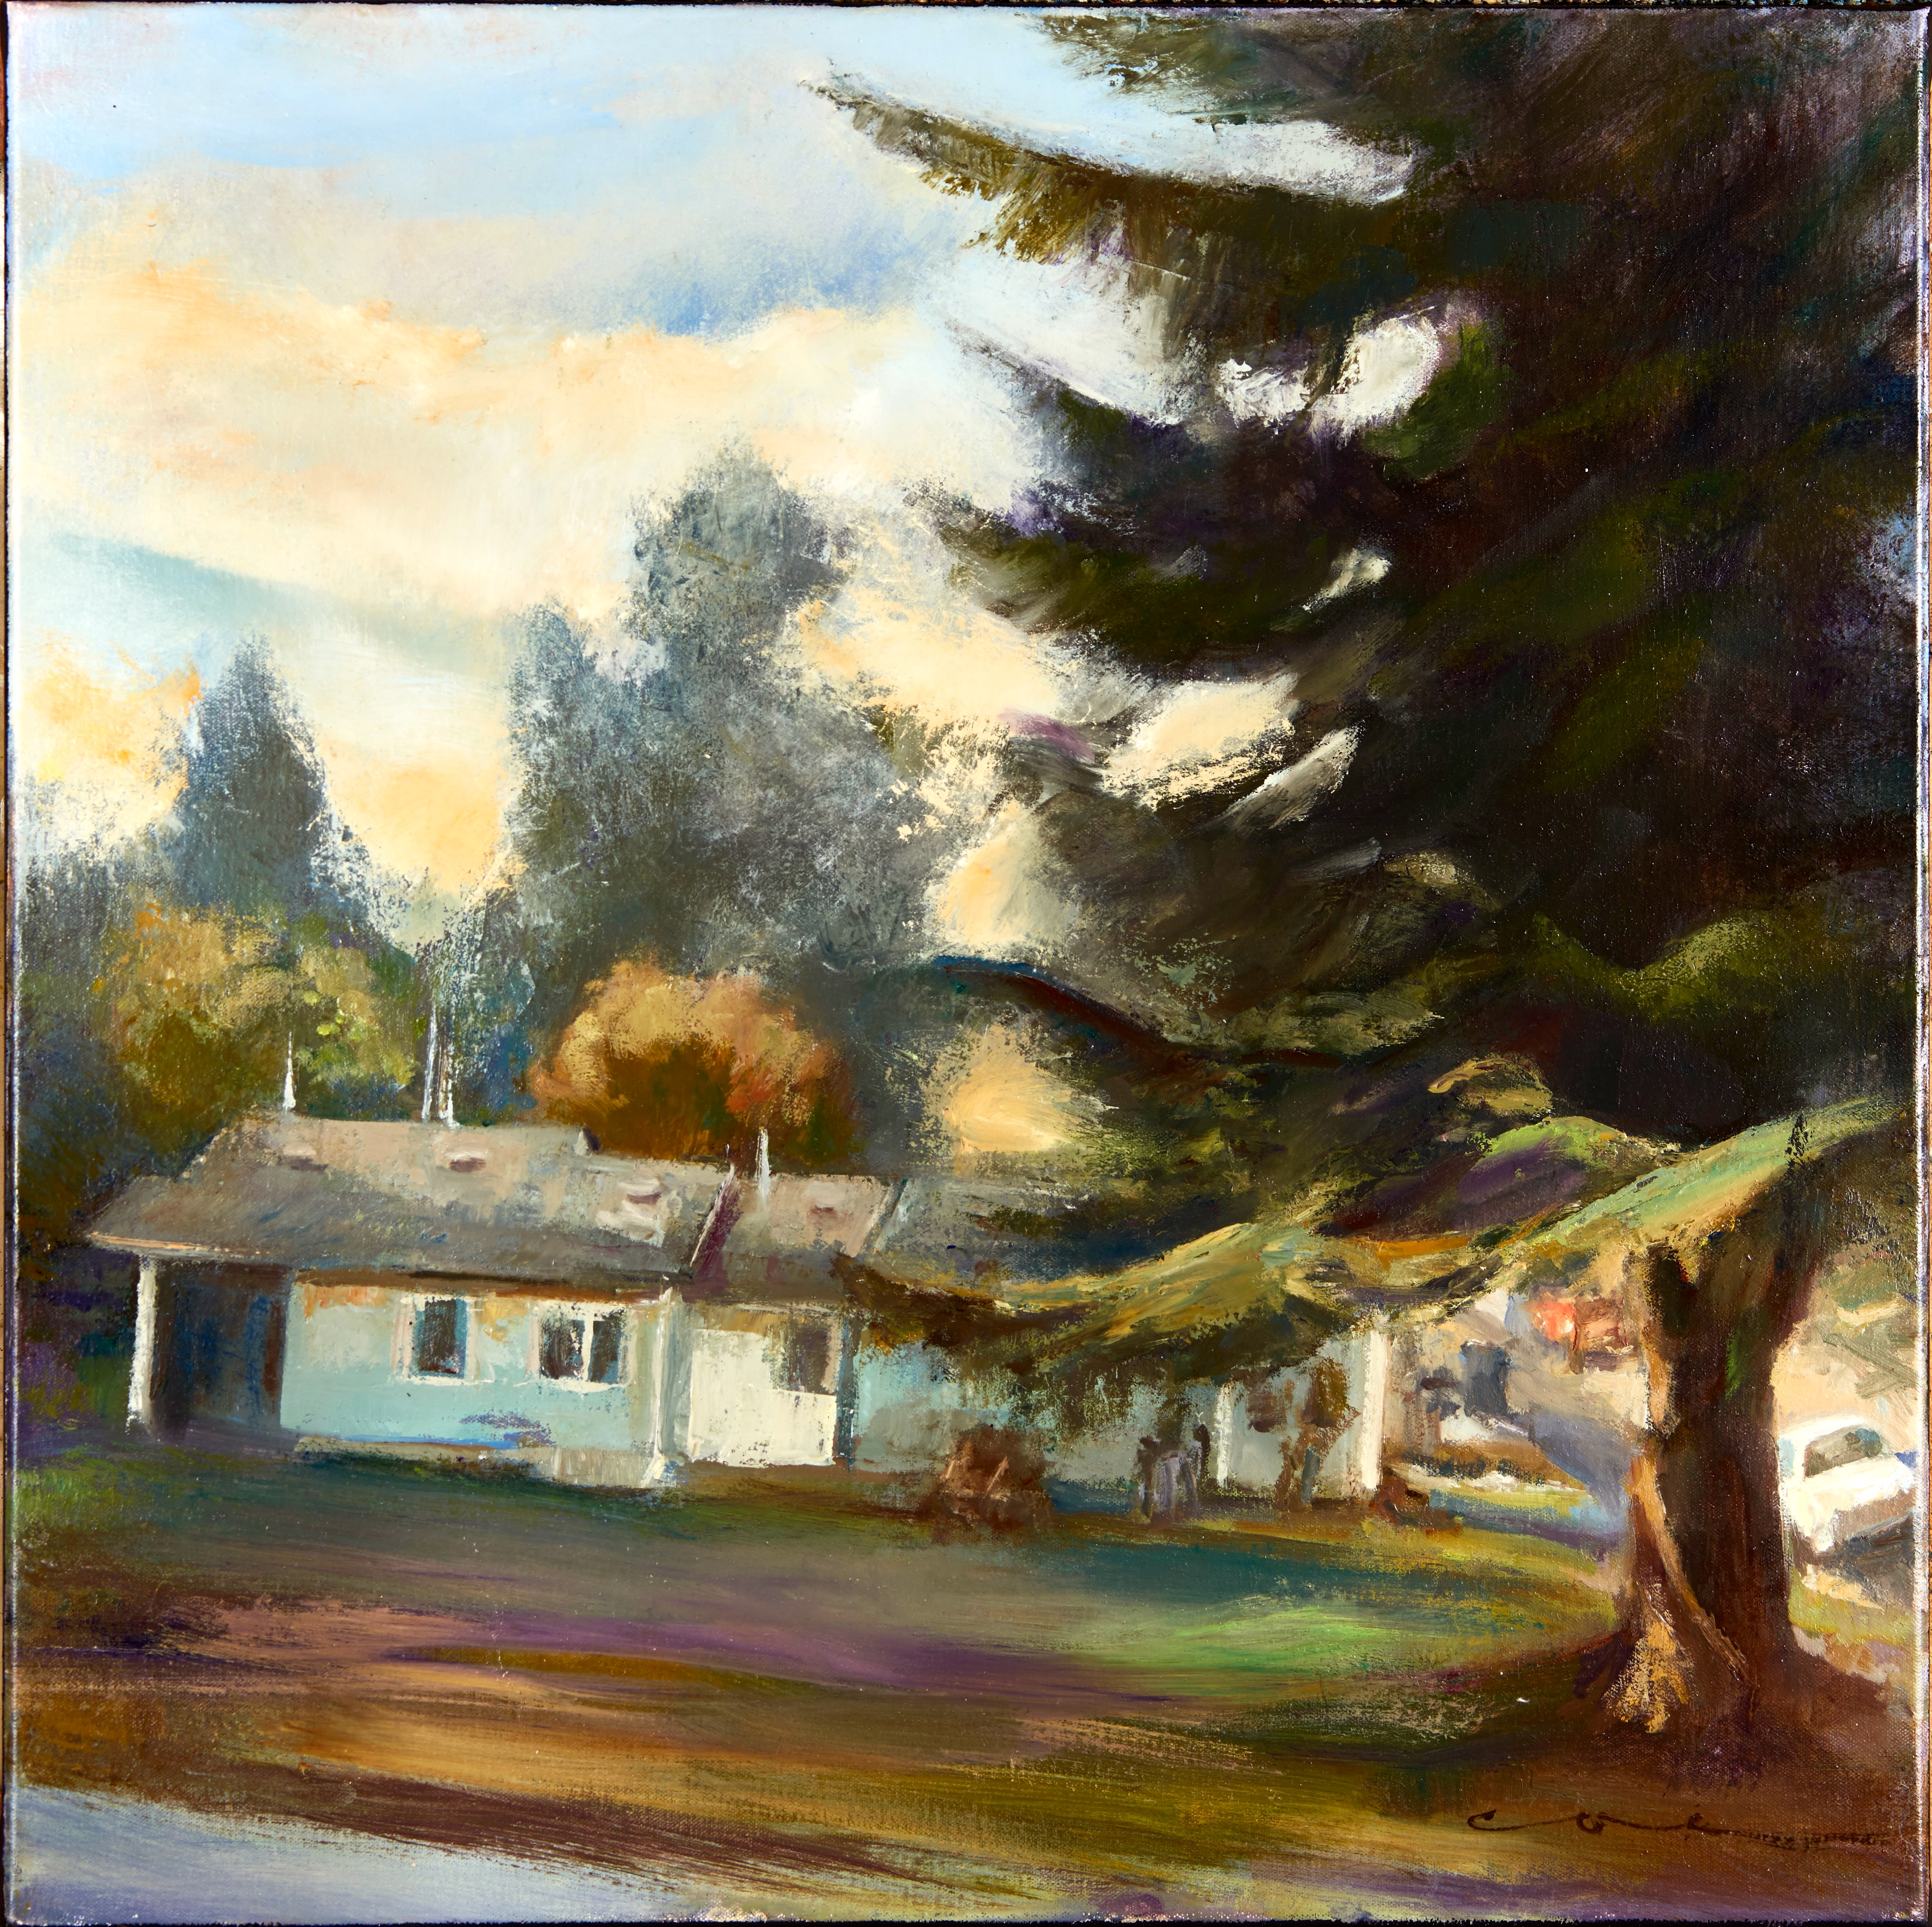 Painter Margaret Coe's newest work is on view through Nov. 25 at the Karin Clarke Gallery